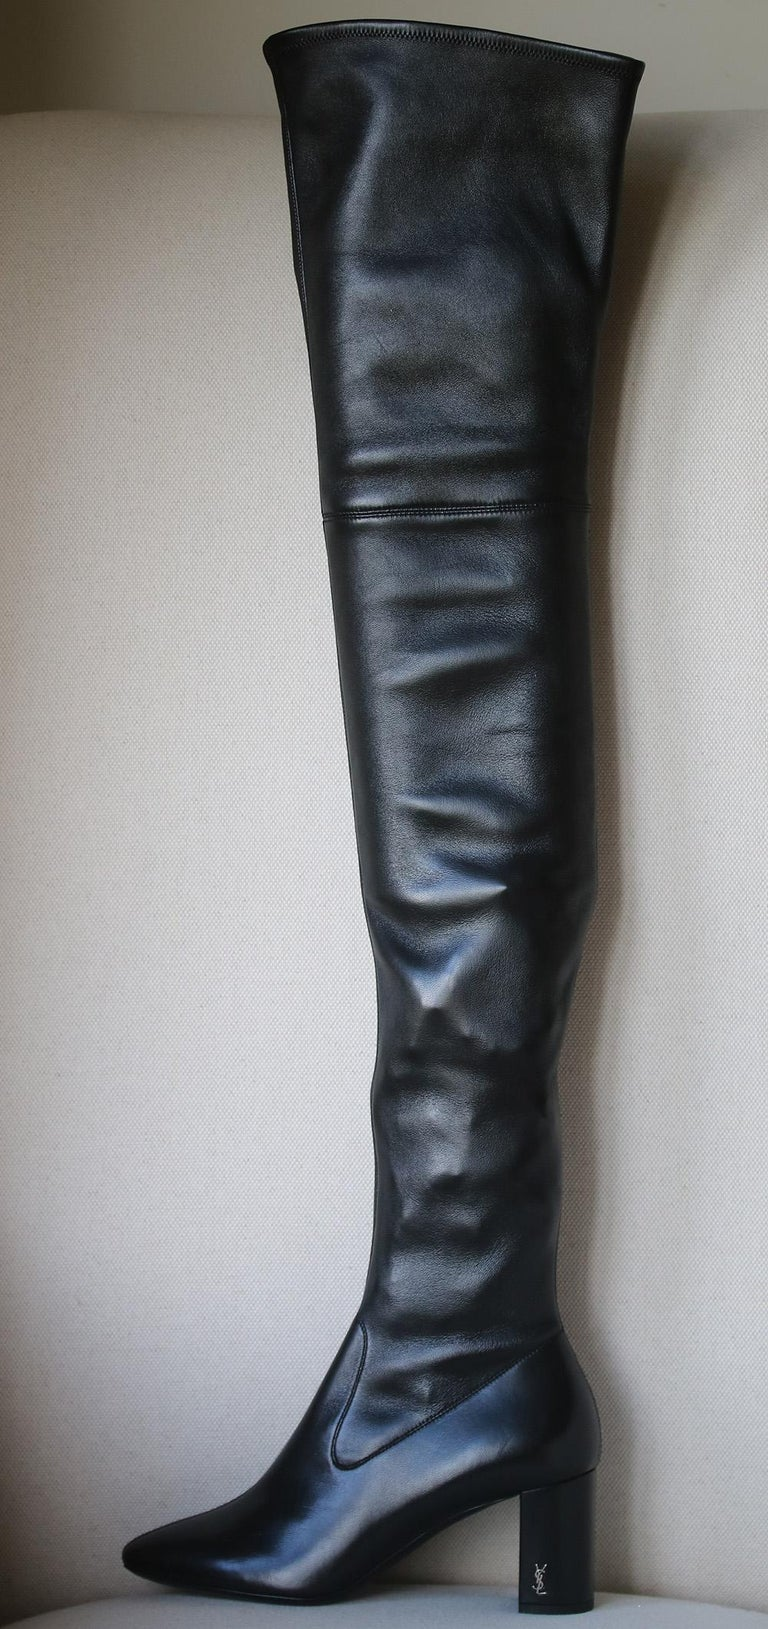 79513e51759 Black Saint Laurent Loulou Leather Over-The-Knee Boots For Sale